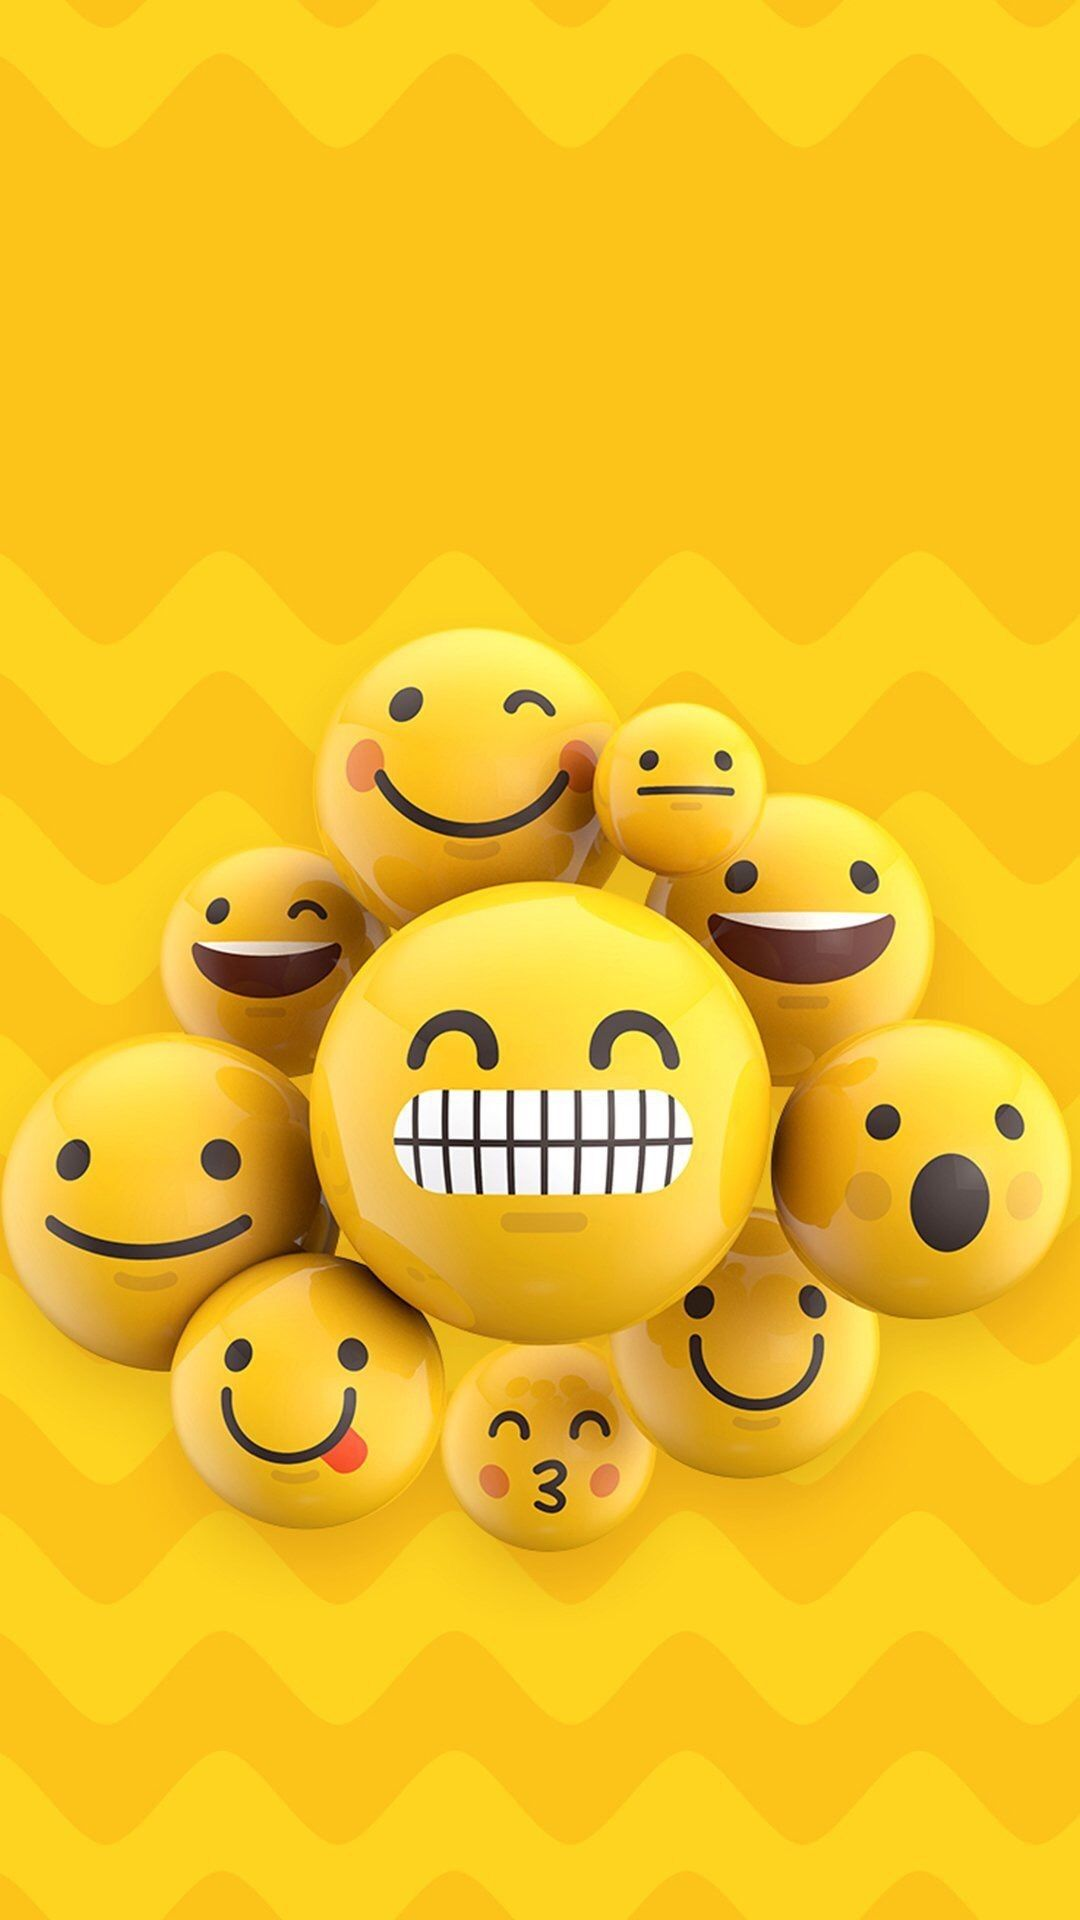 Emojis Wallpaper Iphone Icons 60 Images Emoji Wallpaper Iphone Funny Phone Wallpaper Iphone Wallpaper